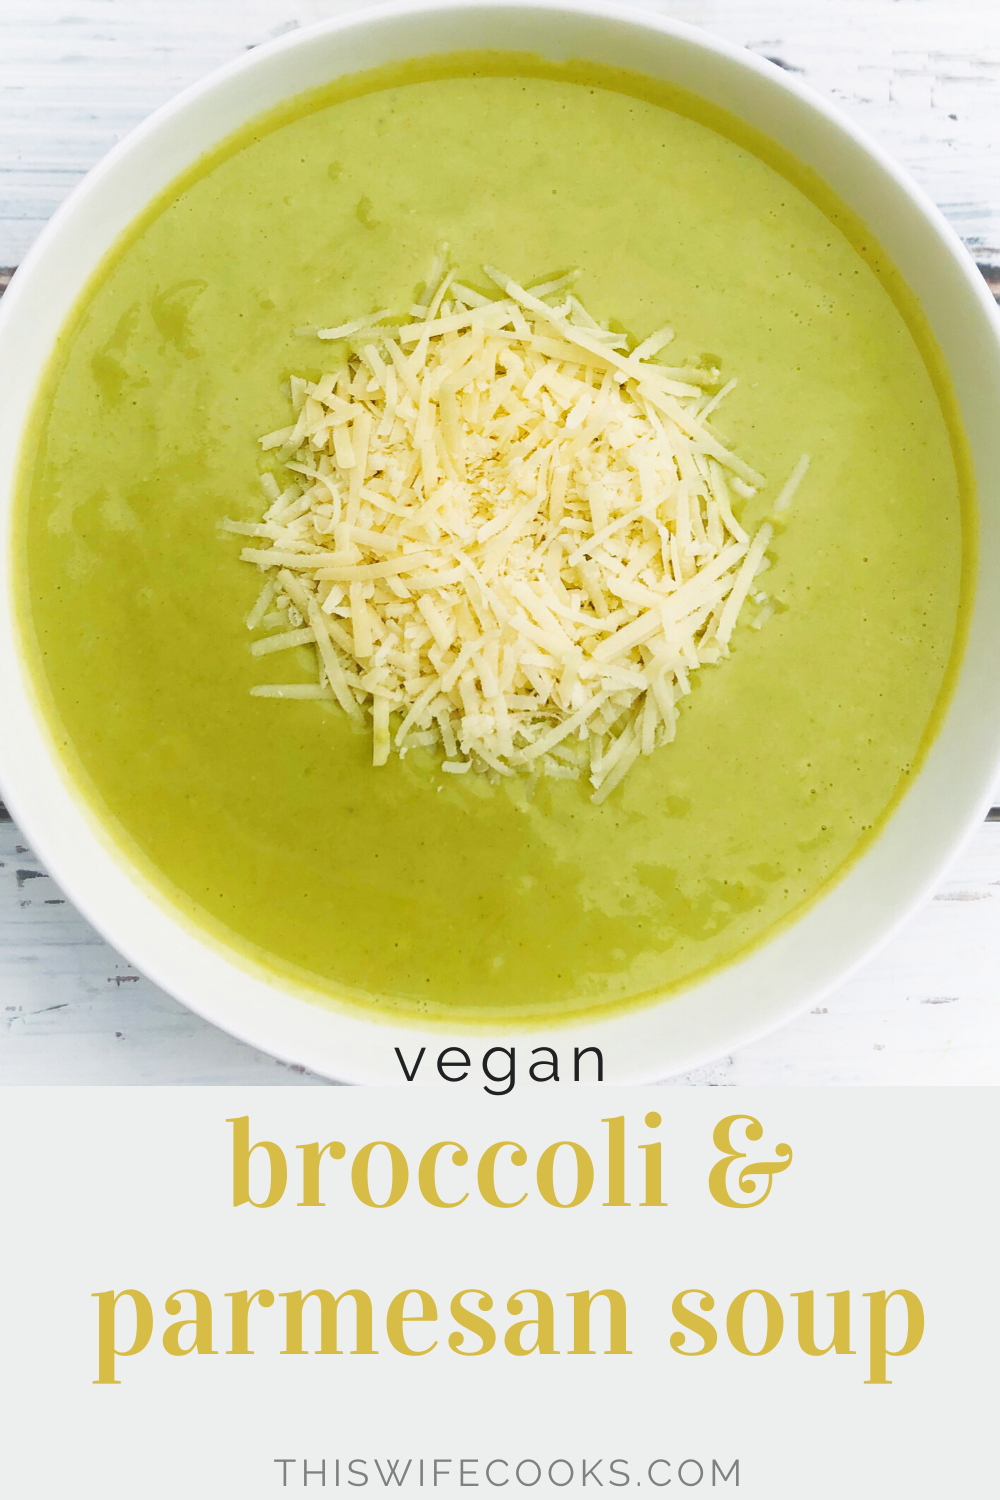 Vegan Broccoli and Parmesan Soup - Quick and easy - Creamy without feeling heavy - Packed with good-for-you ingredients - Ready to serve in 30 minutes or less! | thiswifecooks.com